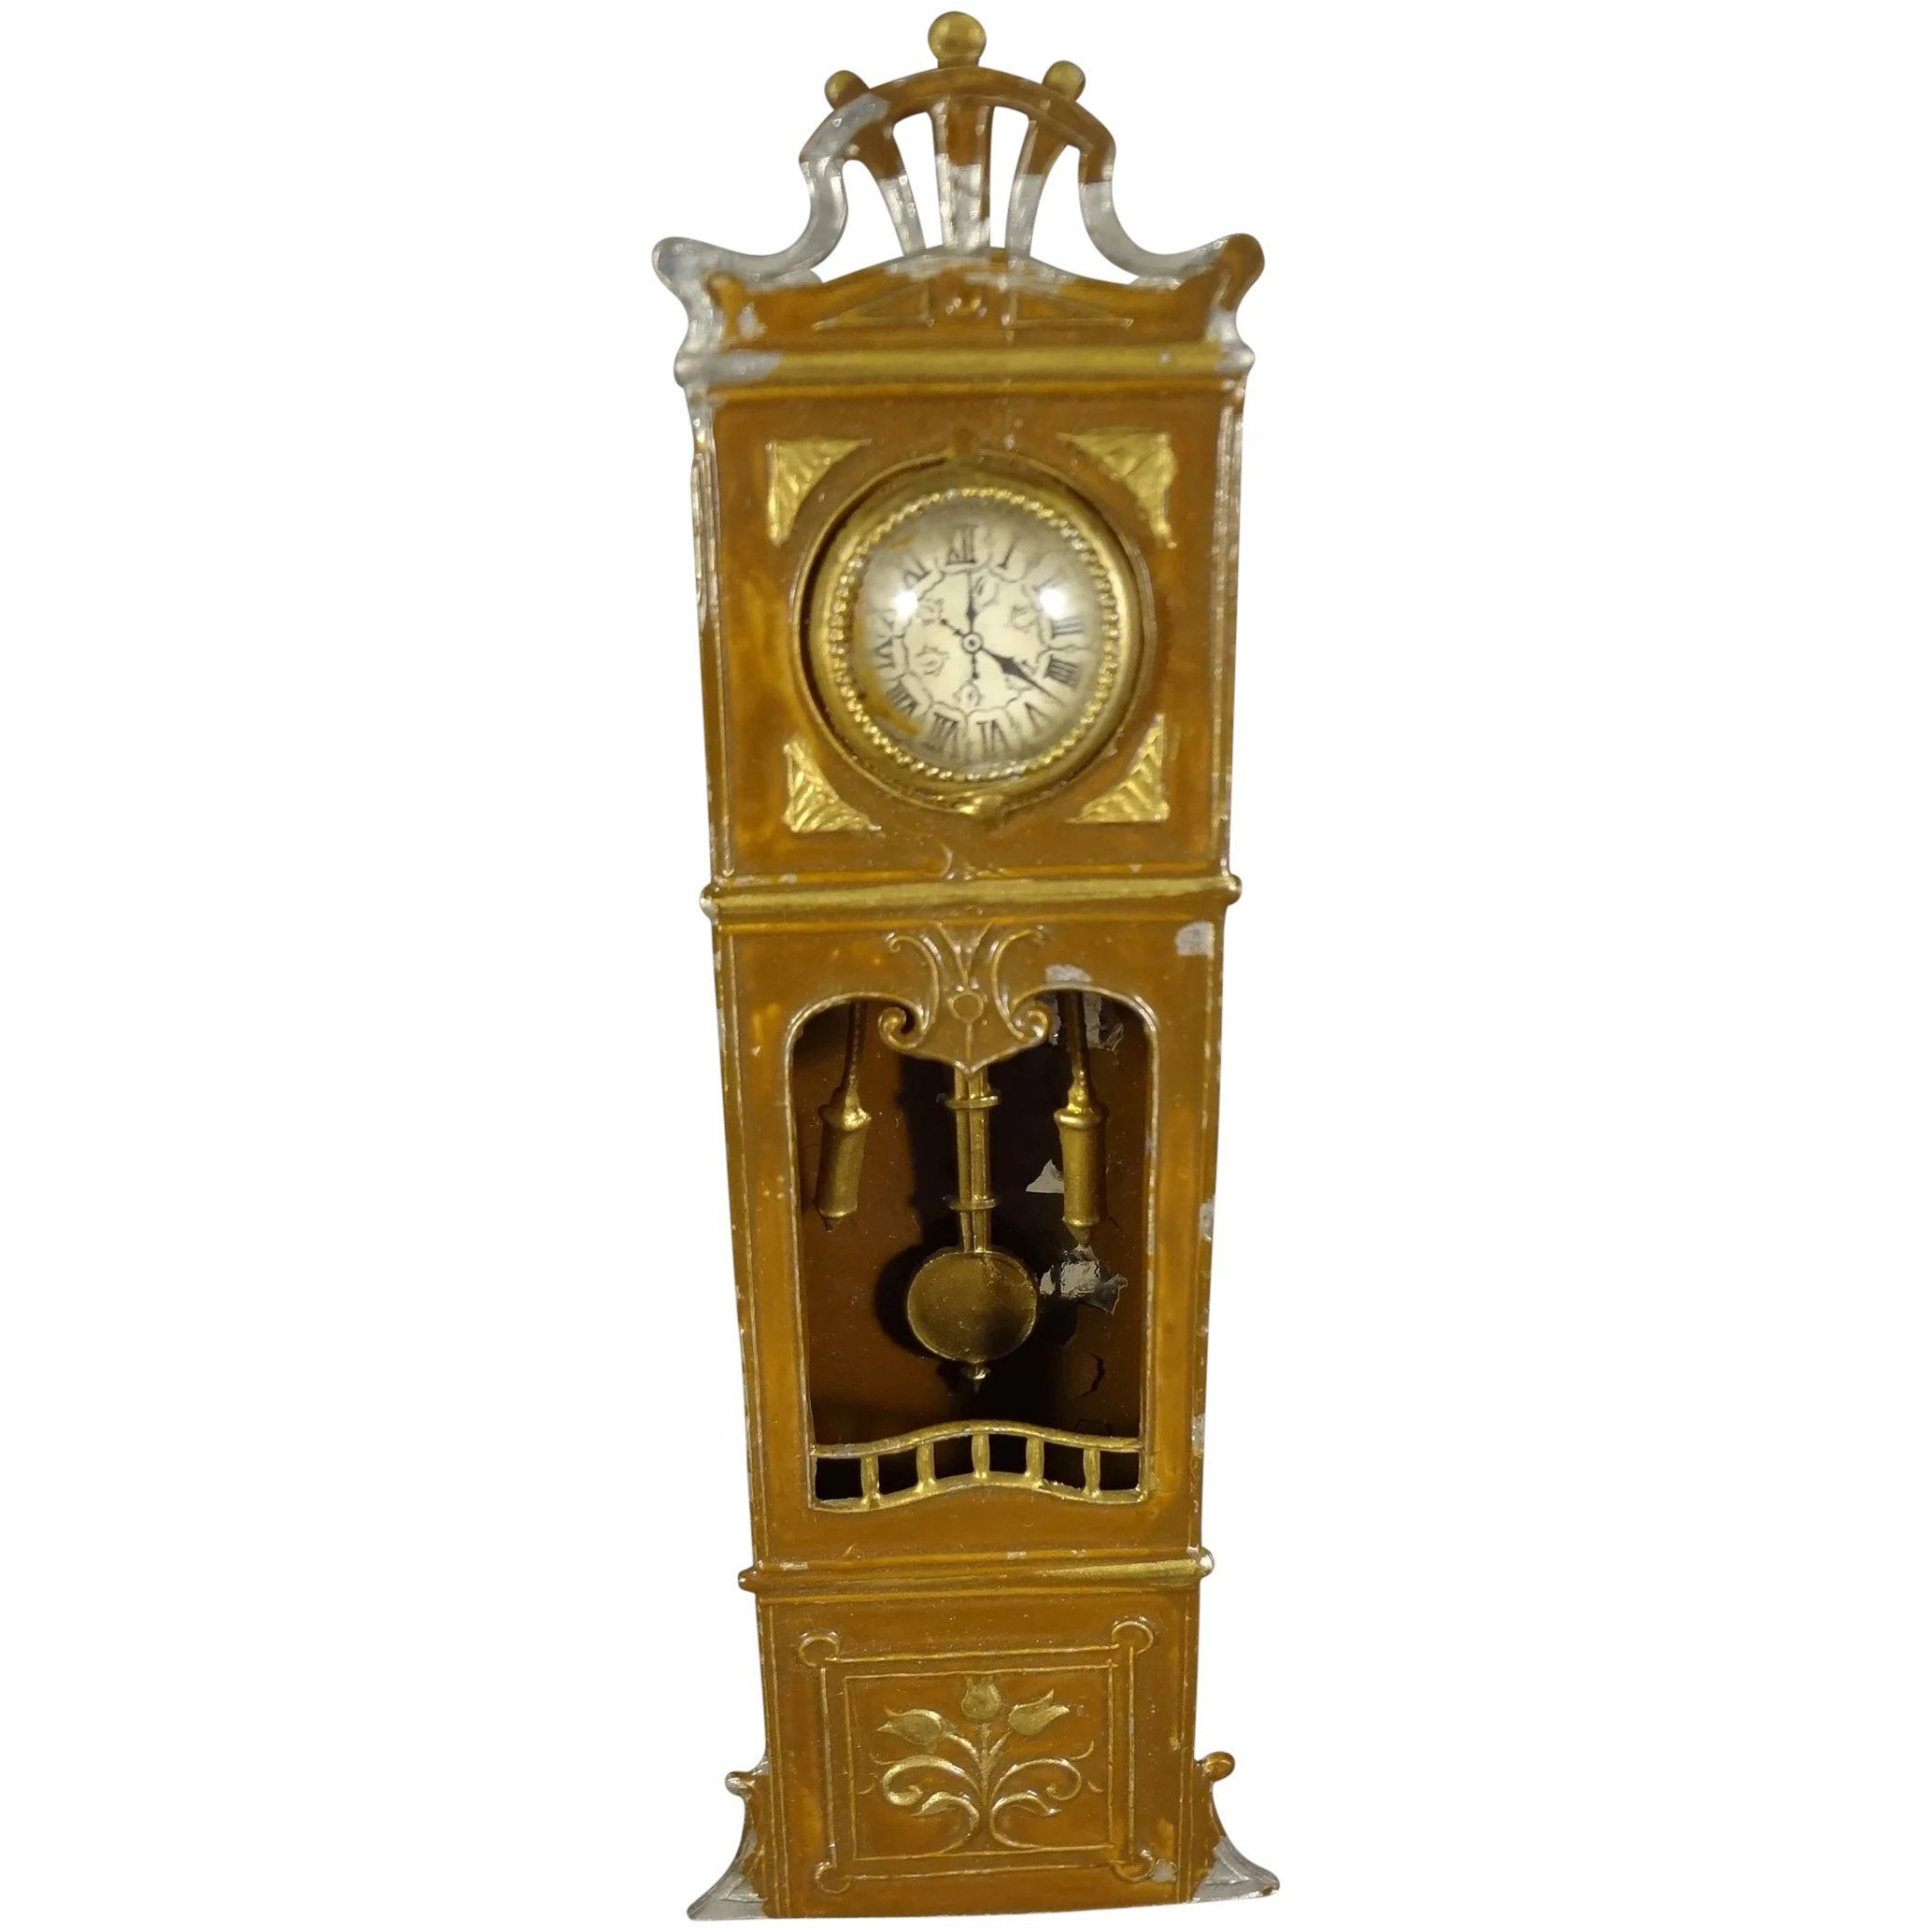 Doll House Tin Painted Tall Case Clock with Pendulum,  #case #Clock #doll #Dollhousesvintage #house #Painted #Pendulum #Tall #Tin